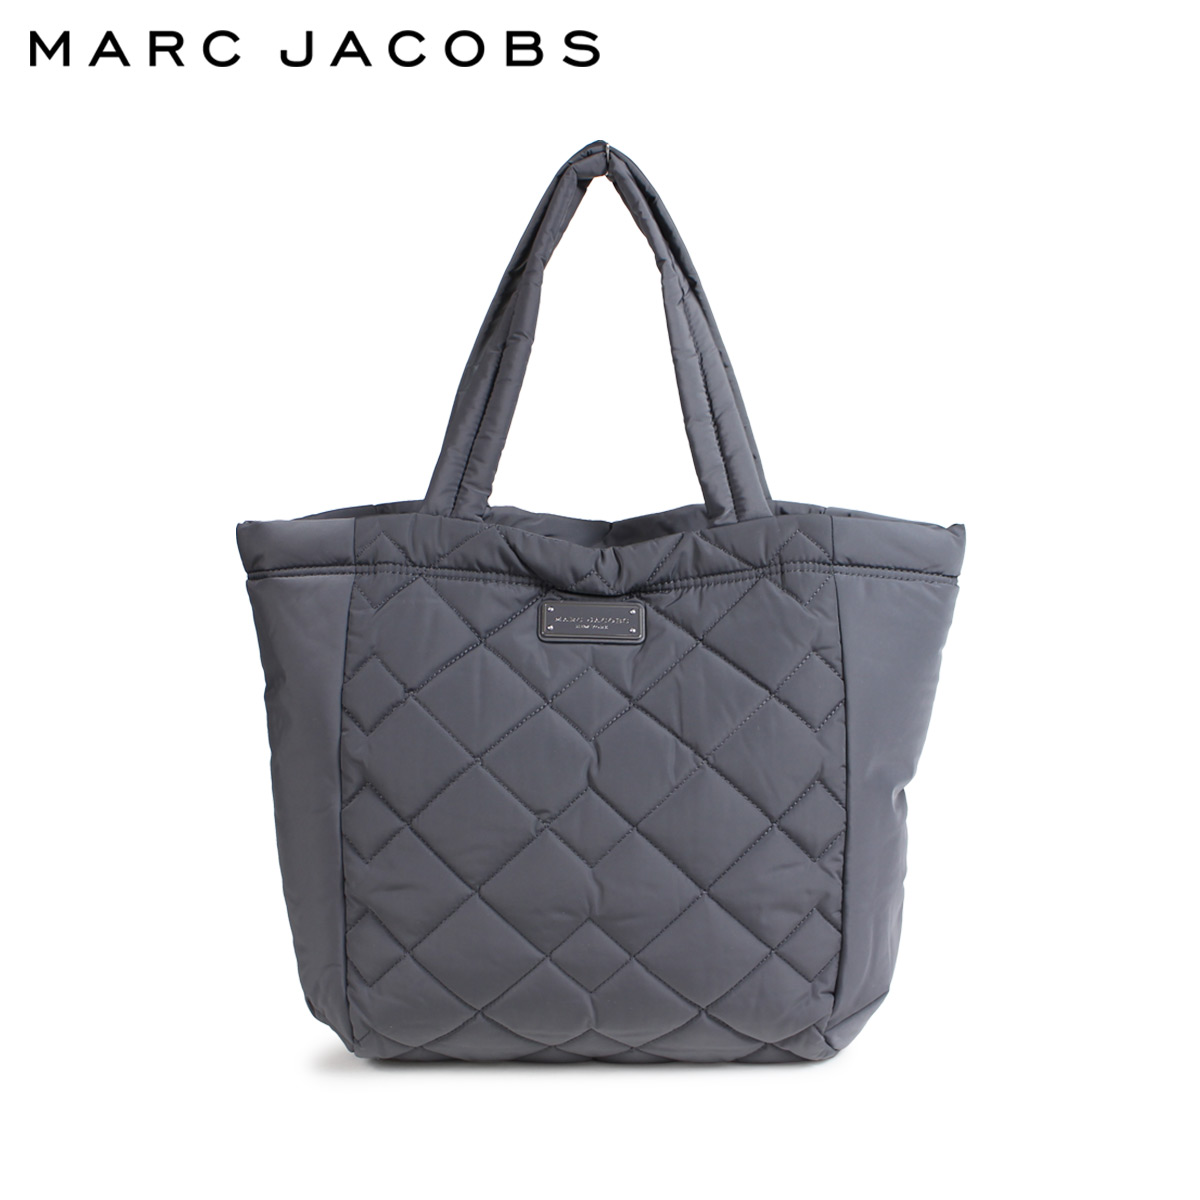 418b650a9 MARC JACOBS mark Jacobs bag tote bag Mothers bag lady QUILTED TOTE dark  gray M0011322 ...